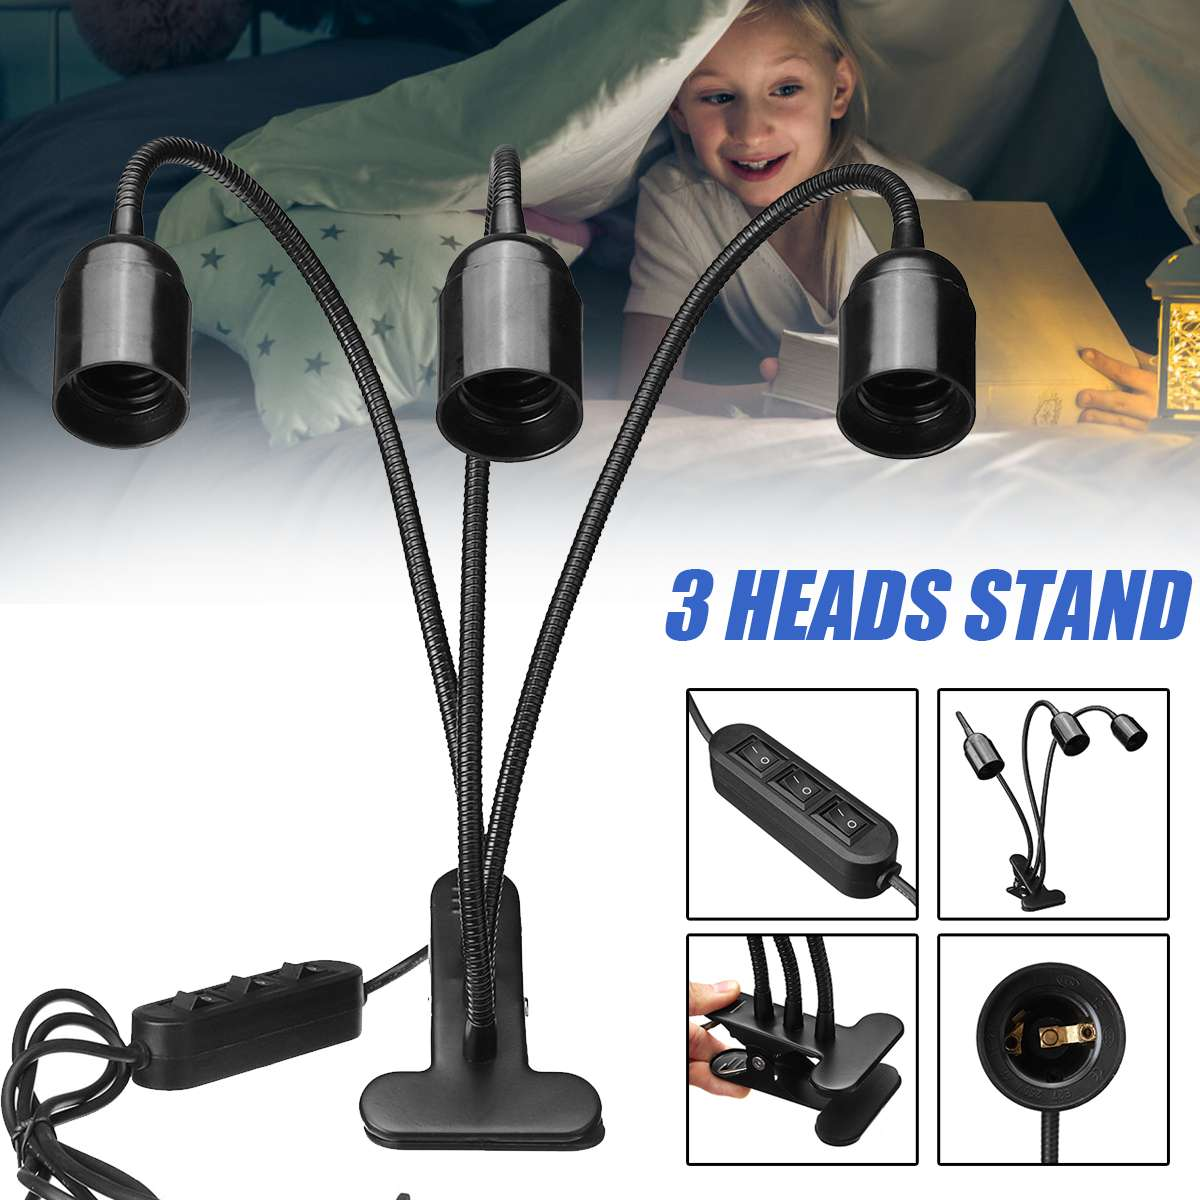 Flexibele Plantengroei Licht Base Stand 3 Heads Clip-On Bureaulamp E27 Lamp Standhouder Kids Studie Tafel lamp Aquarium Verlichting